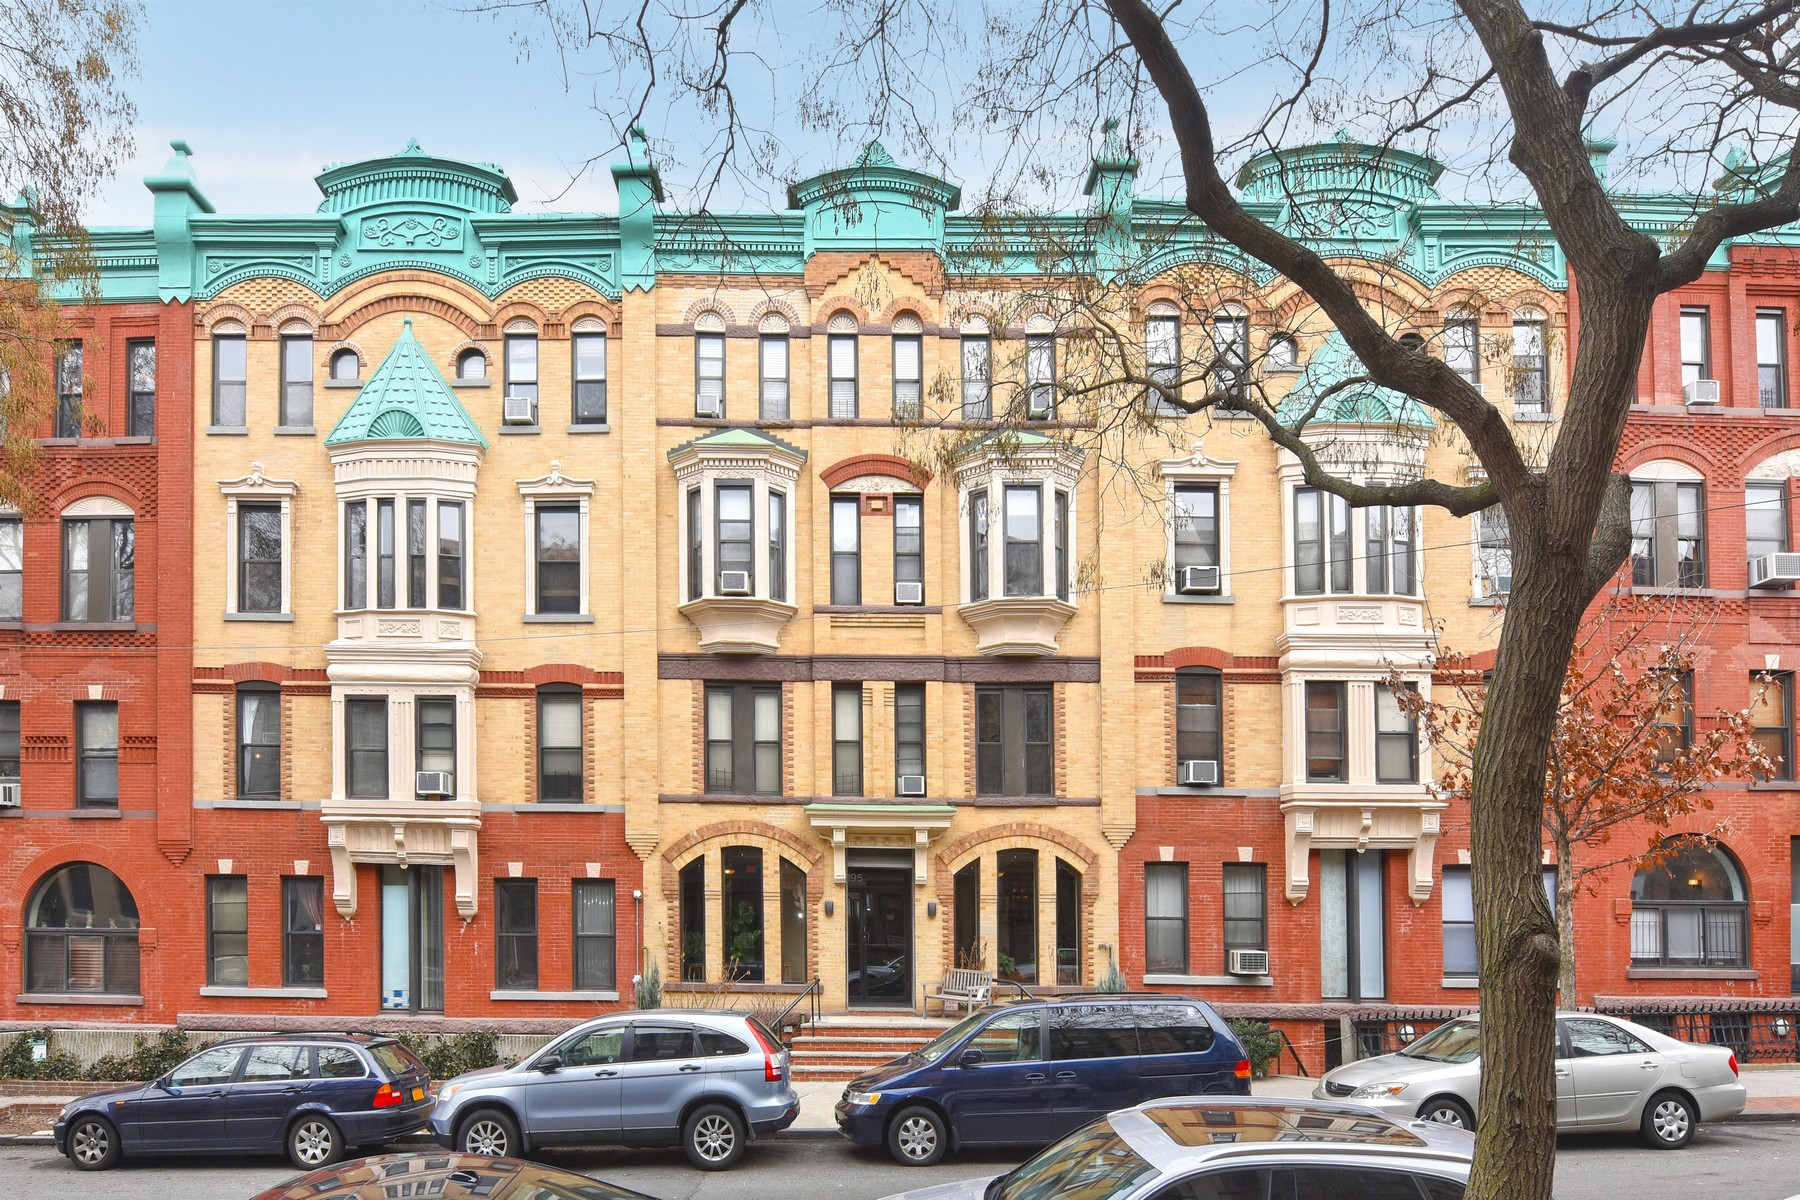 Co-op for Sale at 195 Garfield Pl 2N , Brooklyn, NY 11215 195 Garfield Pl 2N Brooklyn, New York 11215 United States